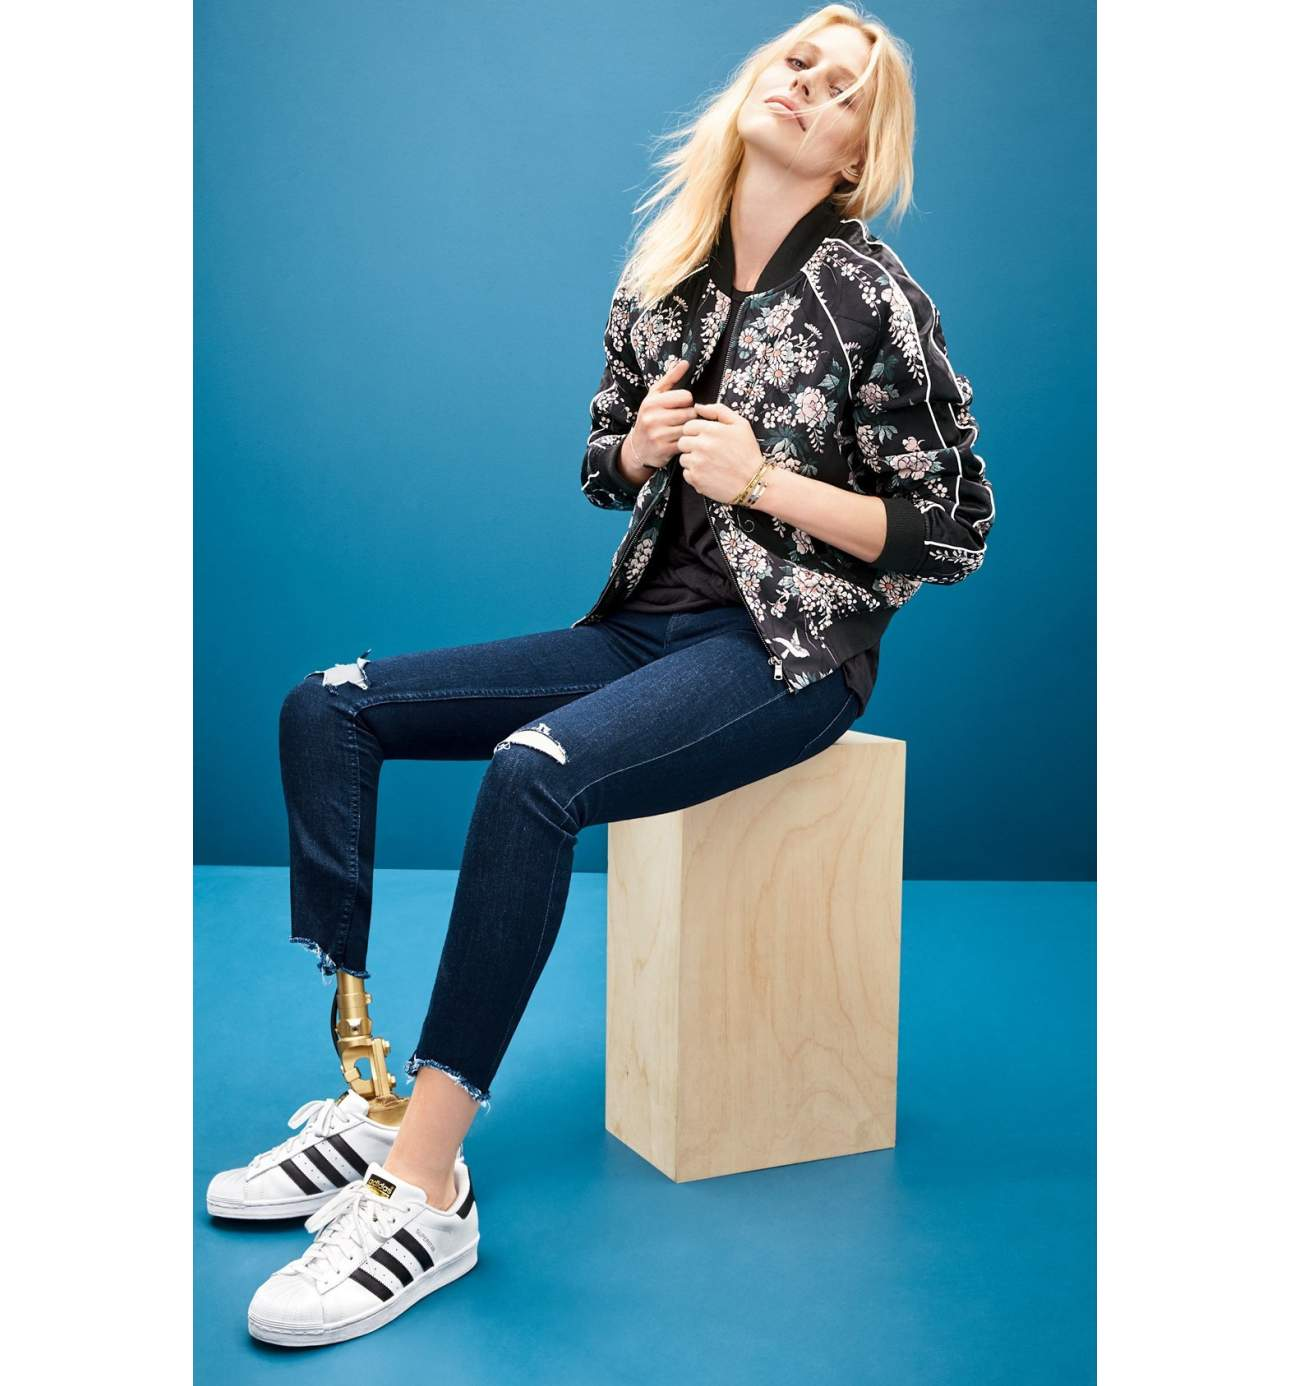 Every gal needs some comfy go-to sneaks. Pair this Adidas with just about anything - even a Spring dress.{ } Superstar Sneaker - $79.95. (Image: Nordstrom){ }